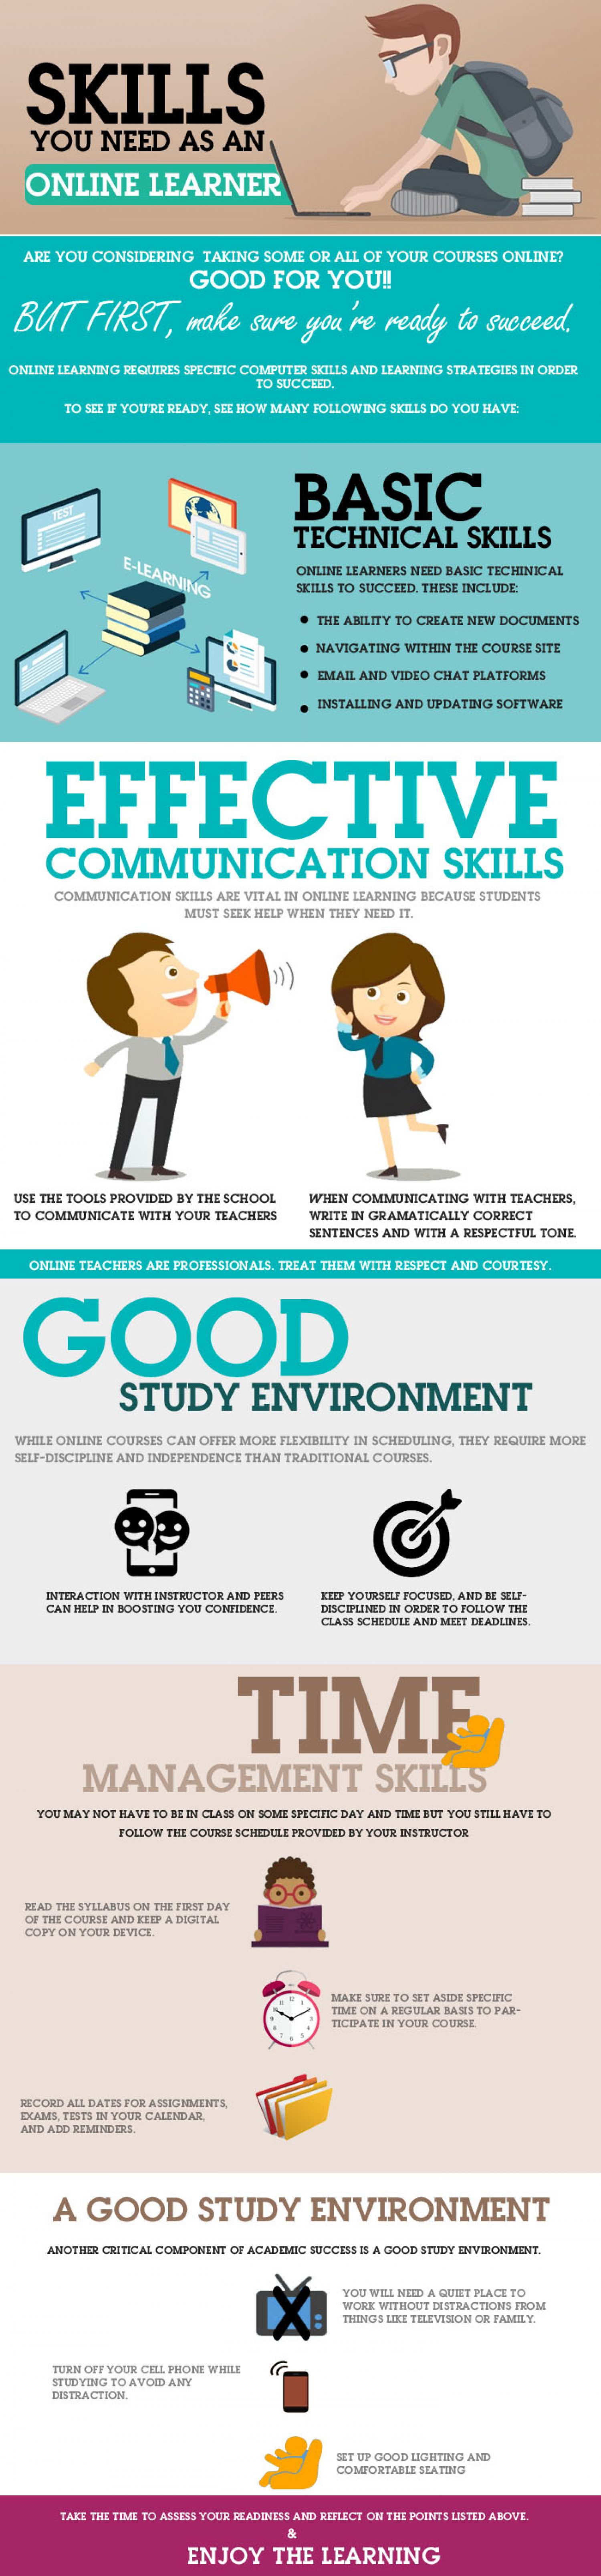 Skills You Need as an Online Learner Infographic